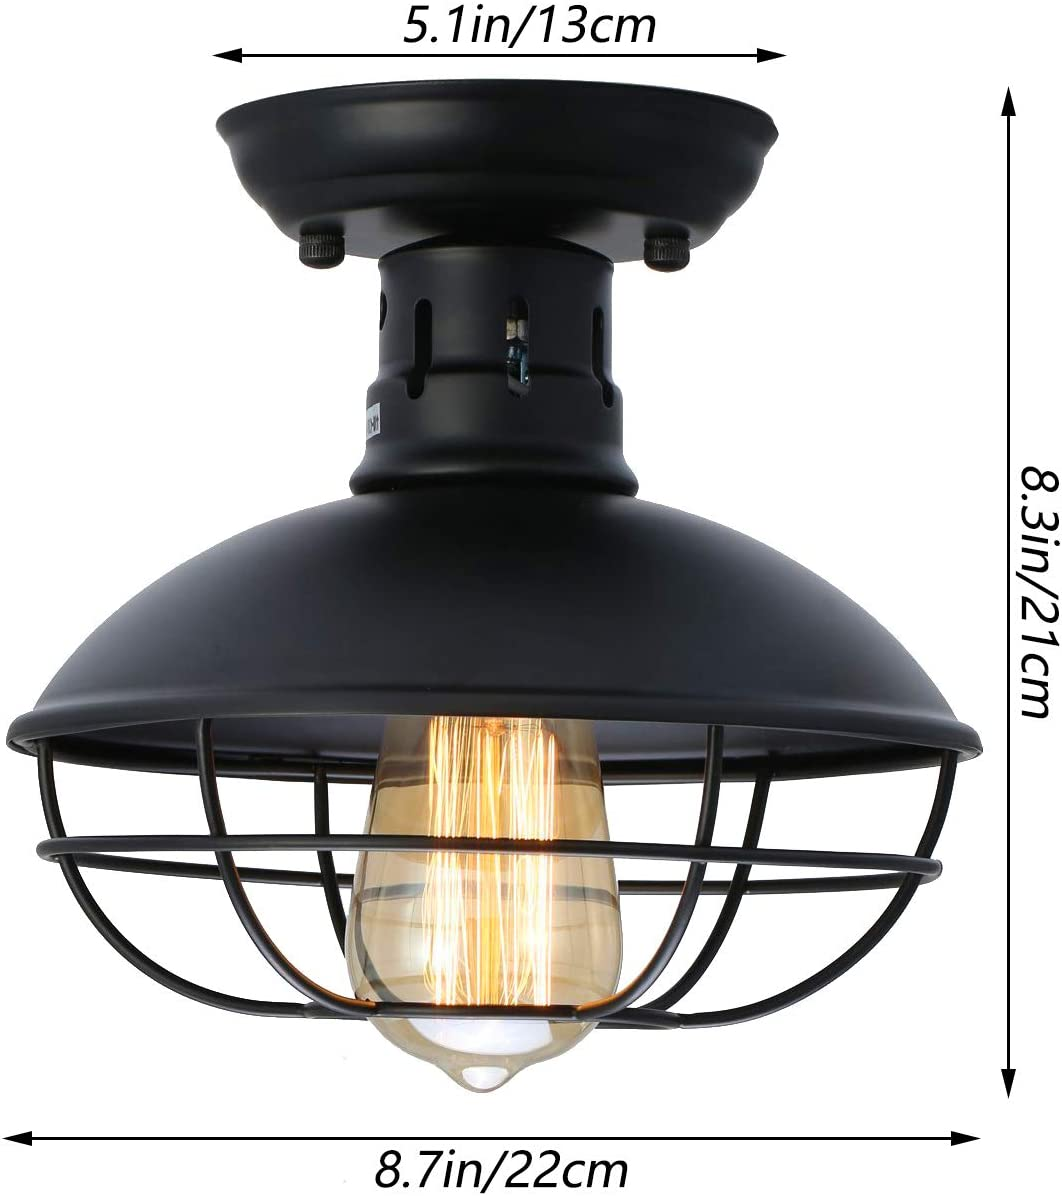 LMSOD Industrial Vintage Metal Black Ceiling Light, Creative Retro Pendant Lights 1 Light Fixture Semi Flush Mount Pendant Lamp